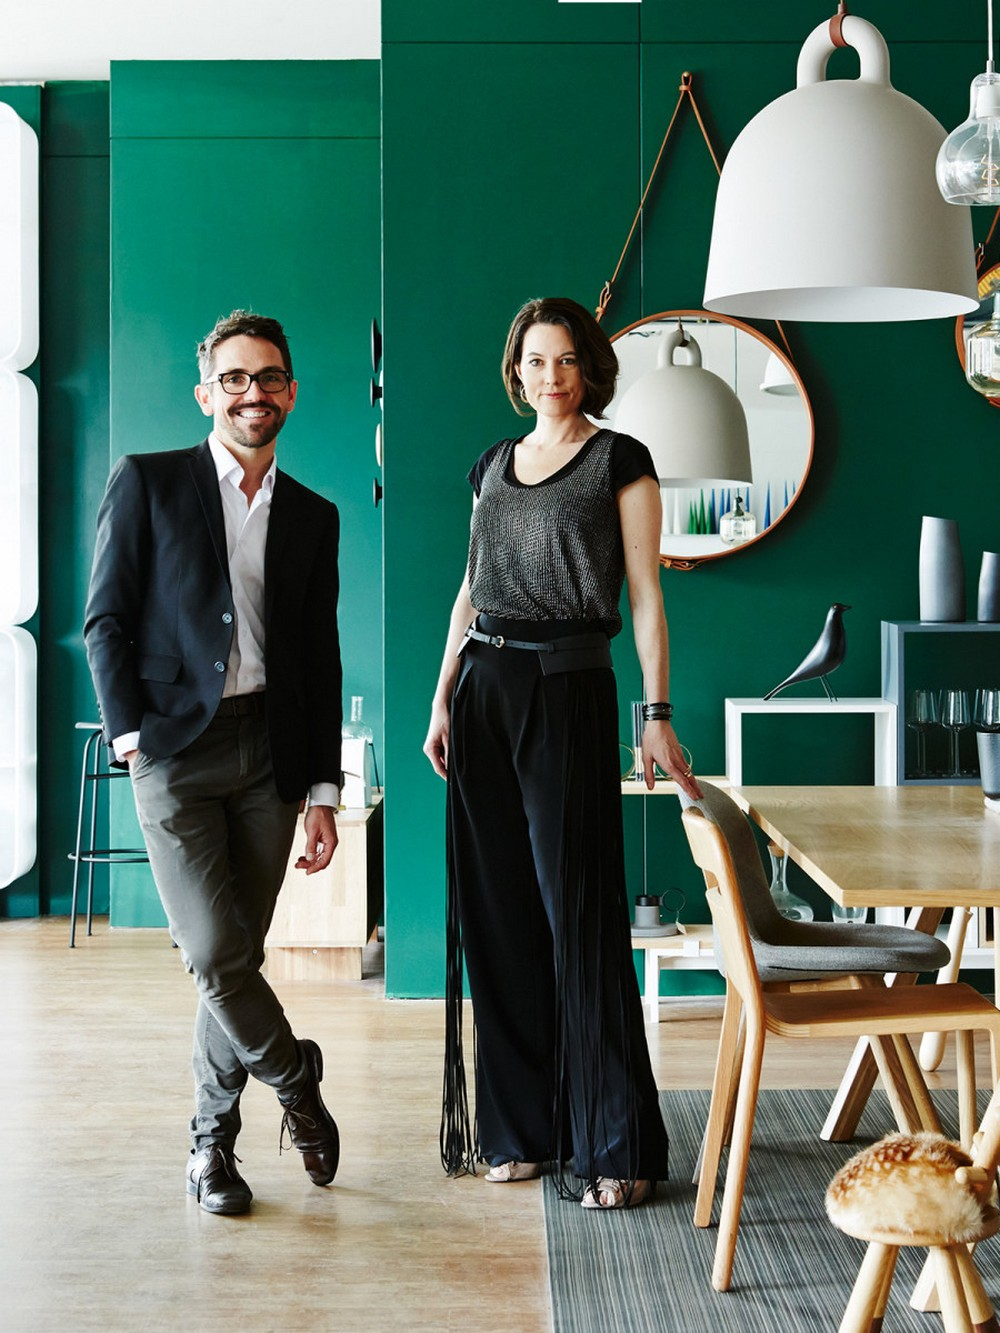 Best Design Showrooms to Discover in Sydney 24 design showrooms Best Design Showrooms to Discover in Sydney Best Design Showrooms to Discover in Sydney 24 luxury showroom Where To Shop – The Best Luxury Showrooms In Sydney Best Design Showrooms to Discover in Sydney 24